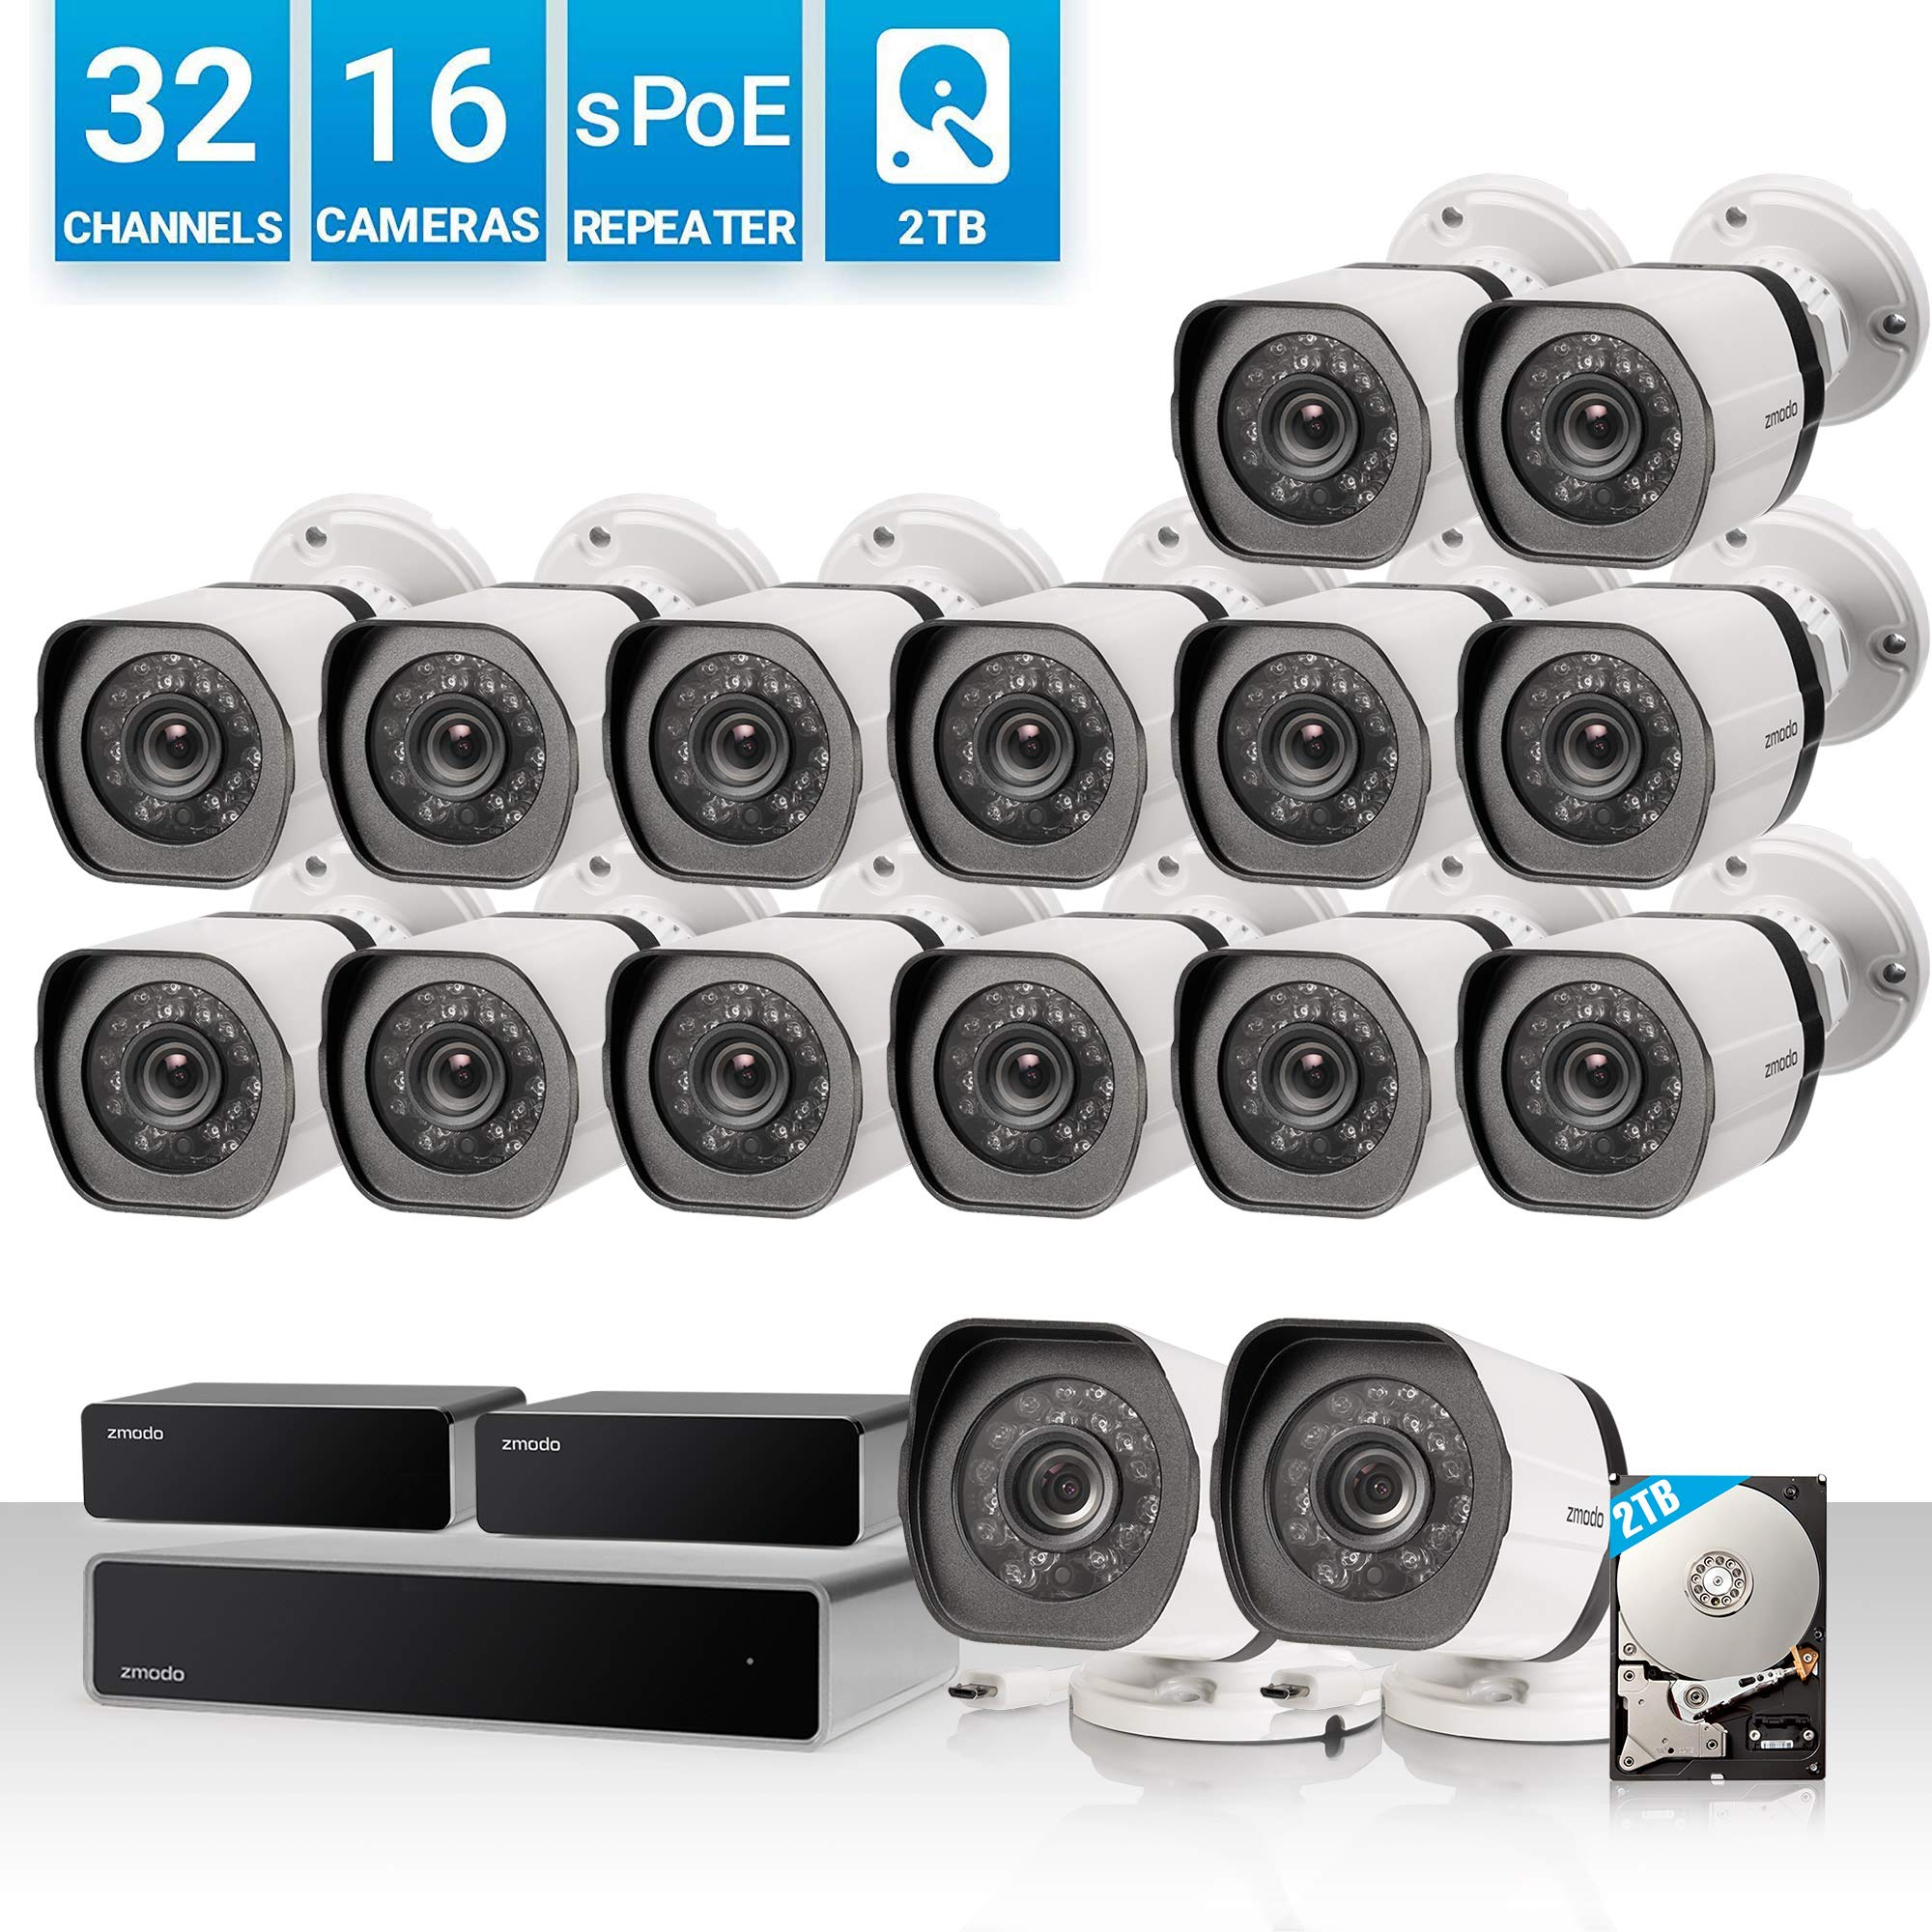 Zmodo 32 Channel 1080P HDMI NVR Security System 16 x720P IP Outdoor/Indoor Surveillance Camera, w/sPoE Repeater for Flexible Installation & Extension, Customizable Motion Detection, w/2TB Hard Drive by Zmodo